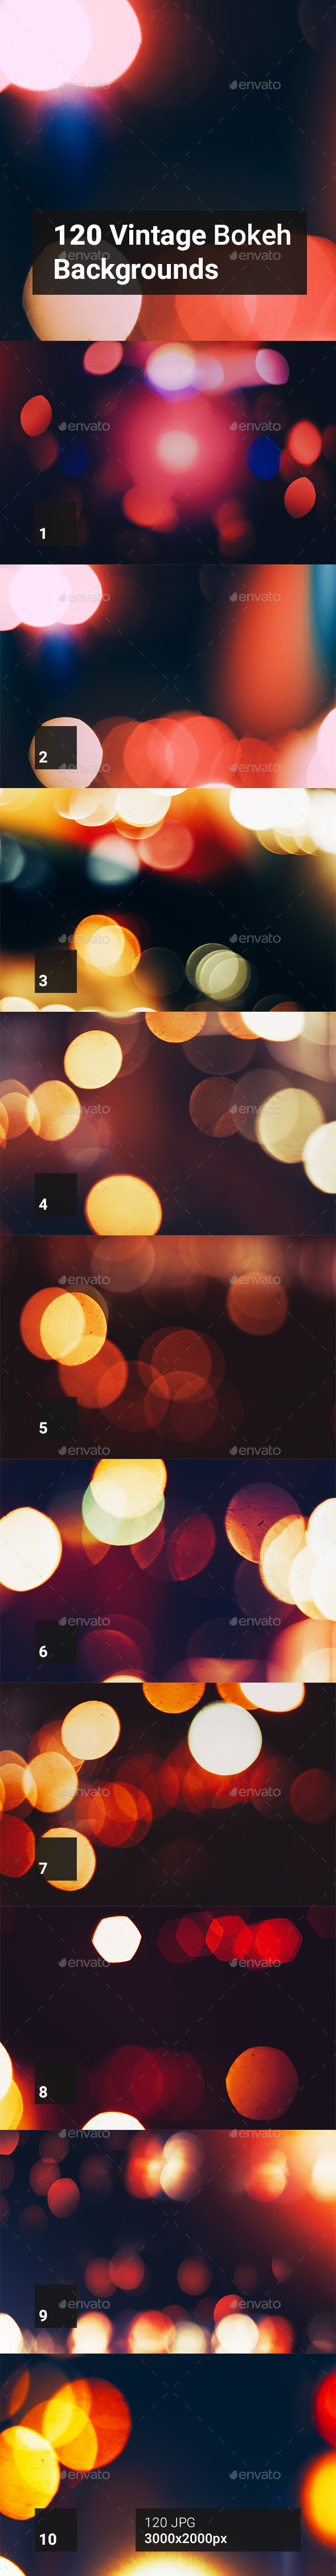 120 Vintage Bokeh Backgrounds - Abstract Backgrounds